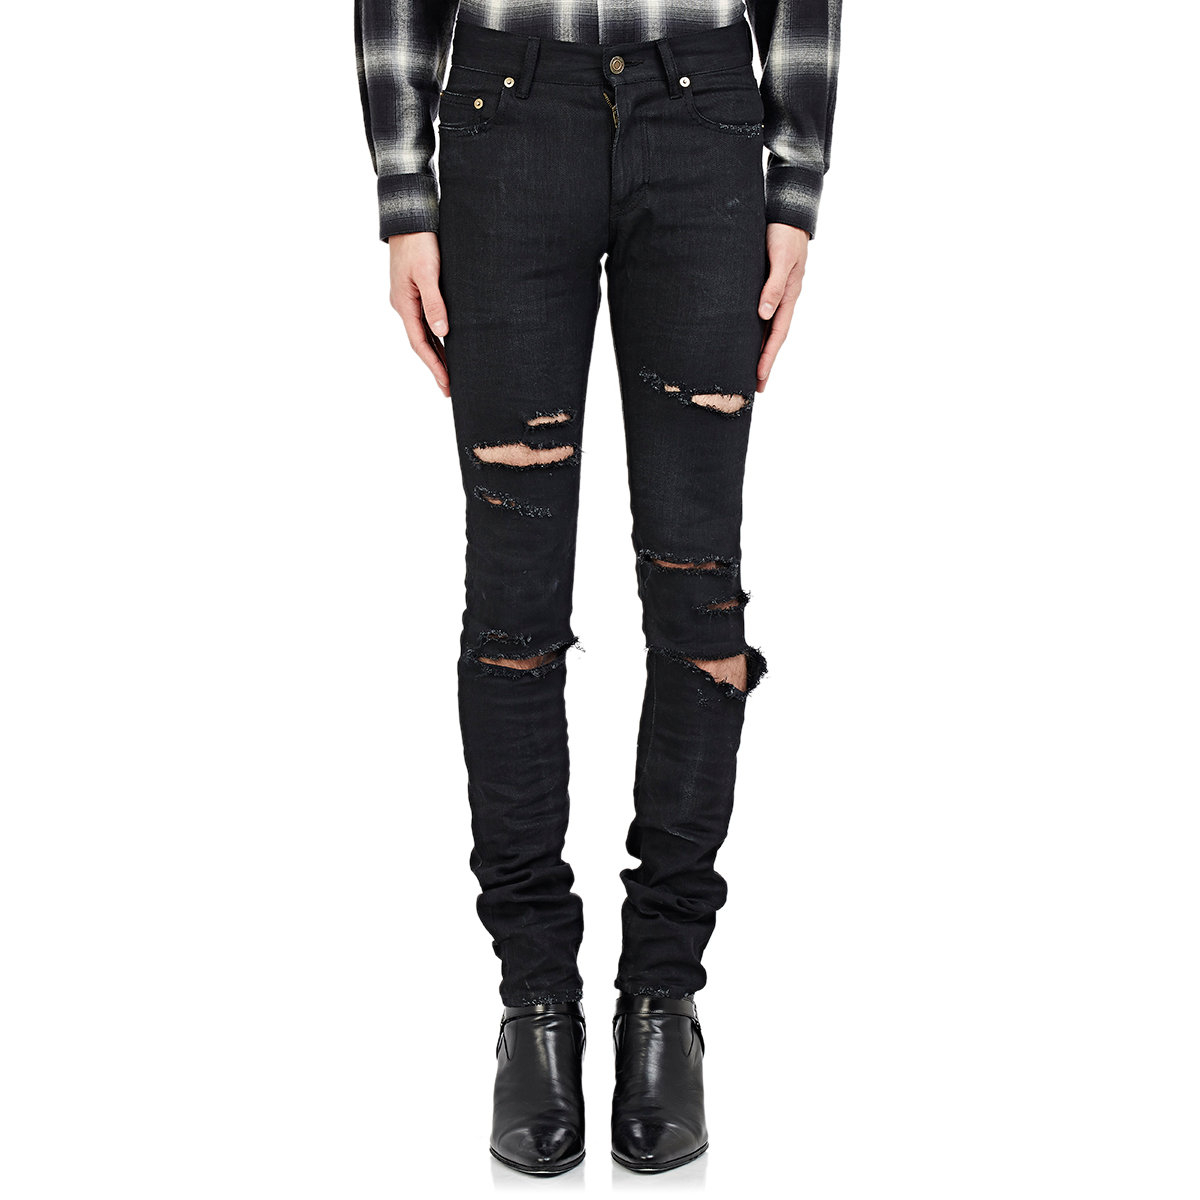 busted knee slim jeans - Black Saint Laurent Cheap Sale Sneakernews Discount Real Visa Payment Sale Online Clearance With Credit Card Sale View KRZiv3L